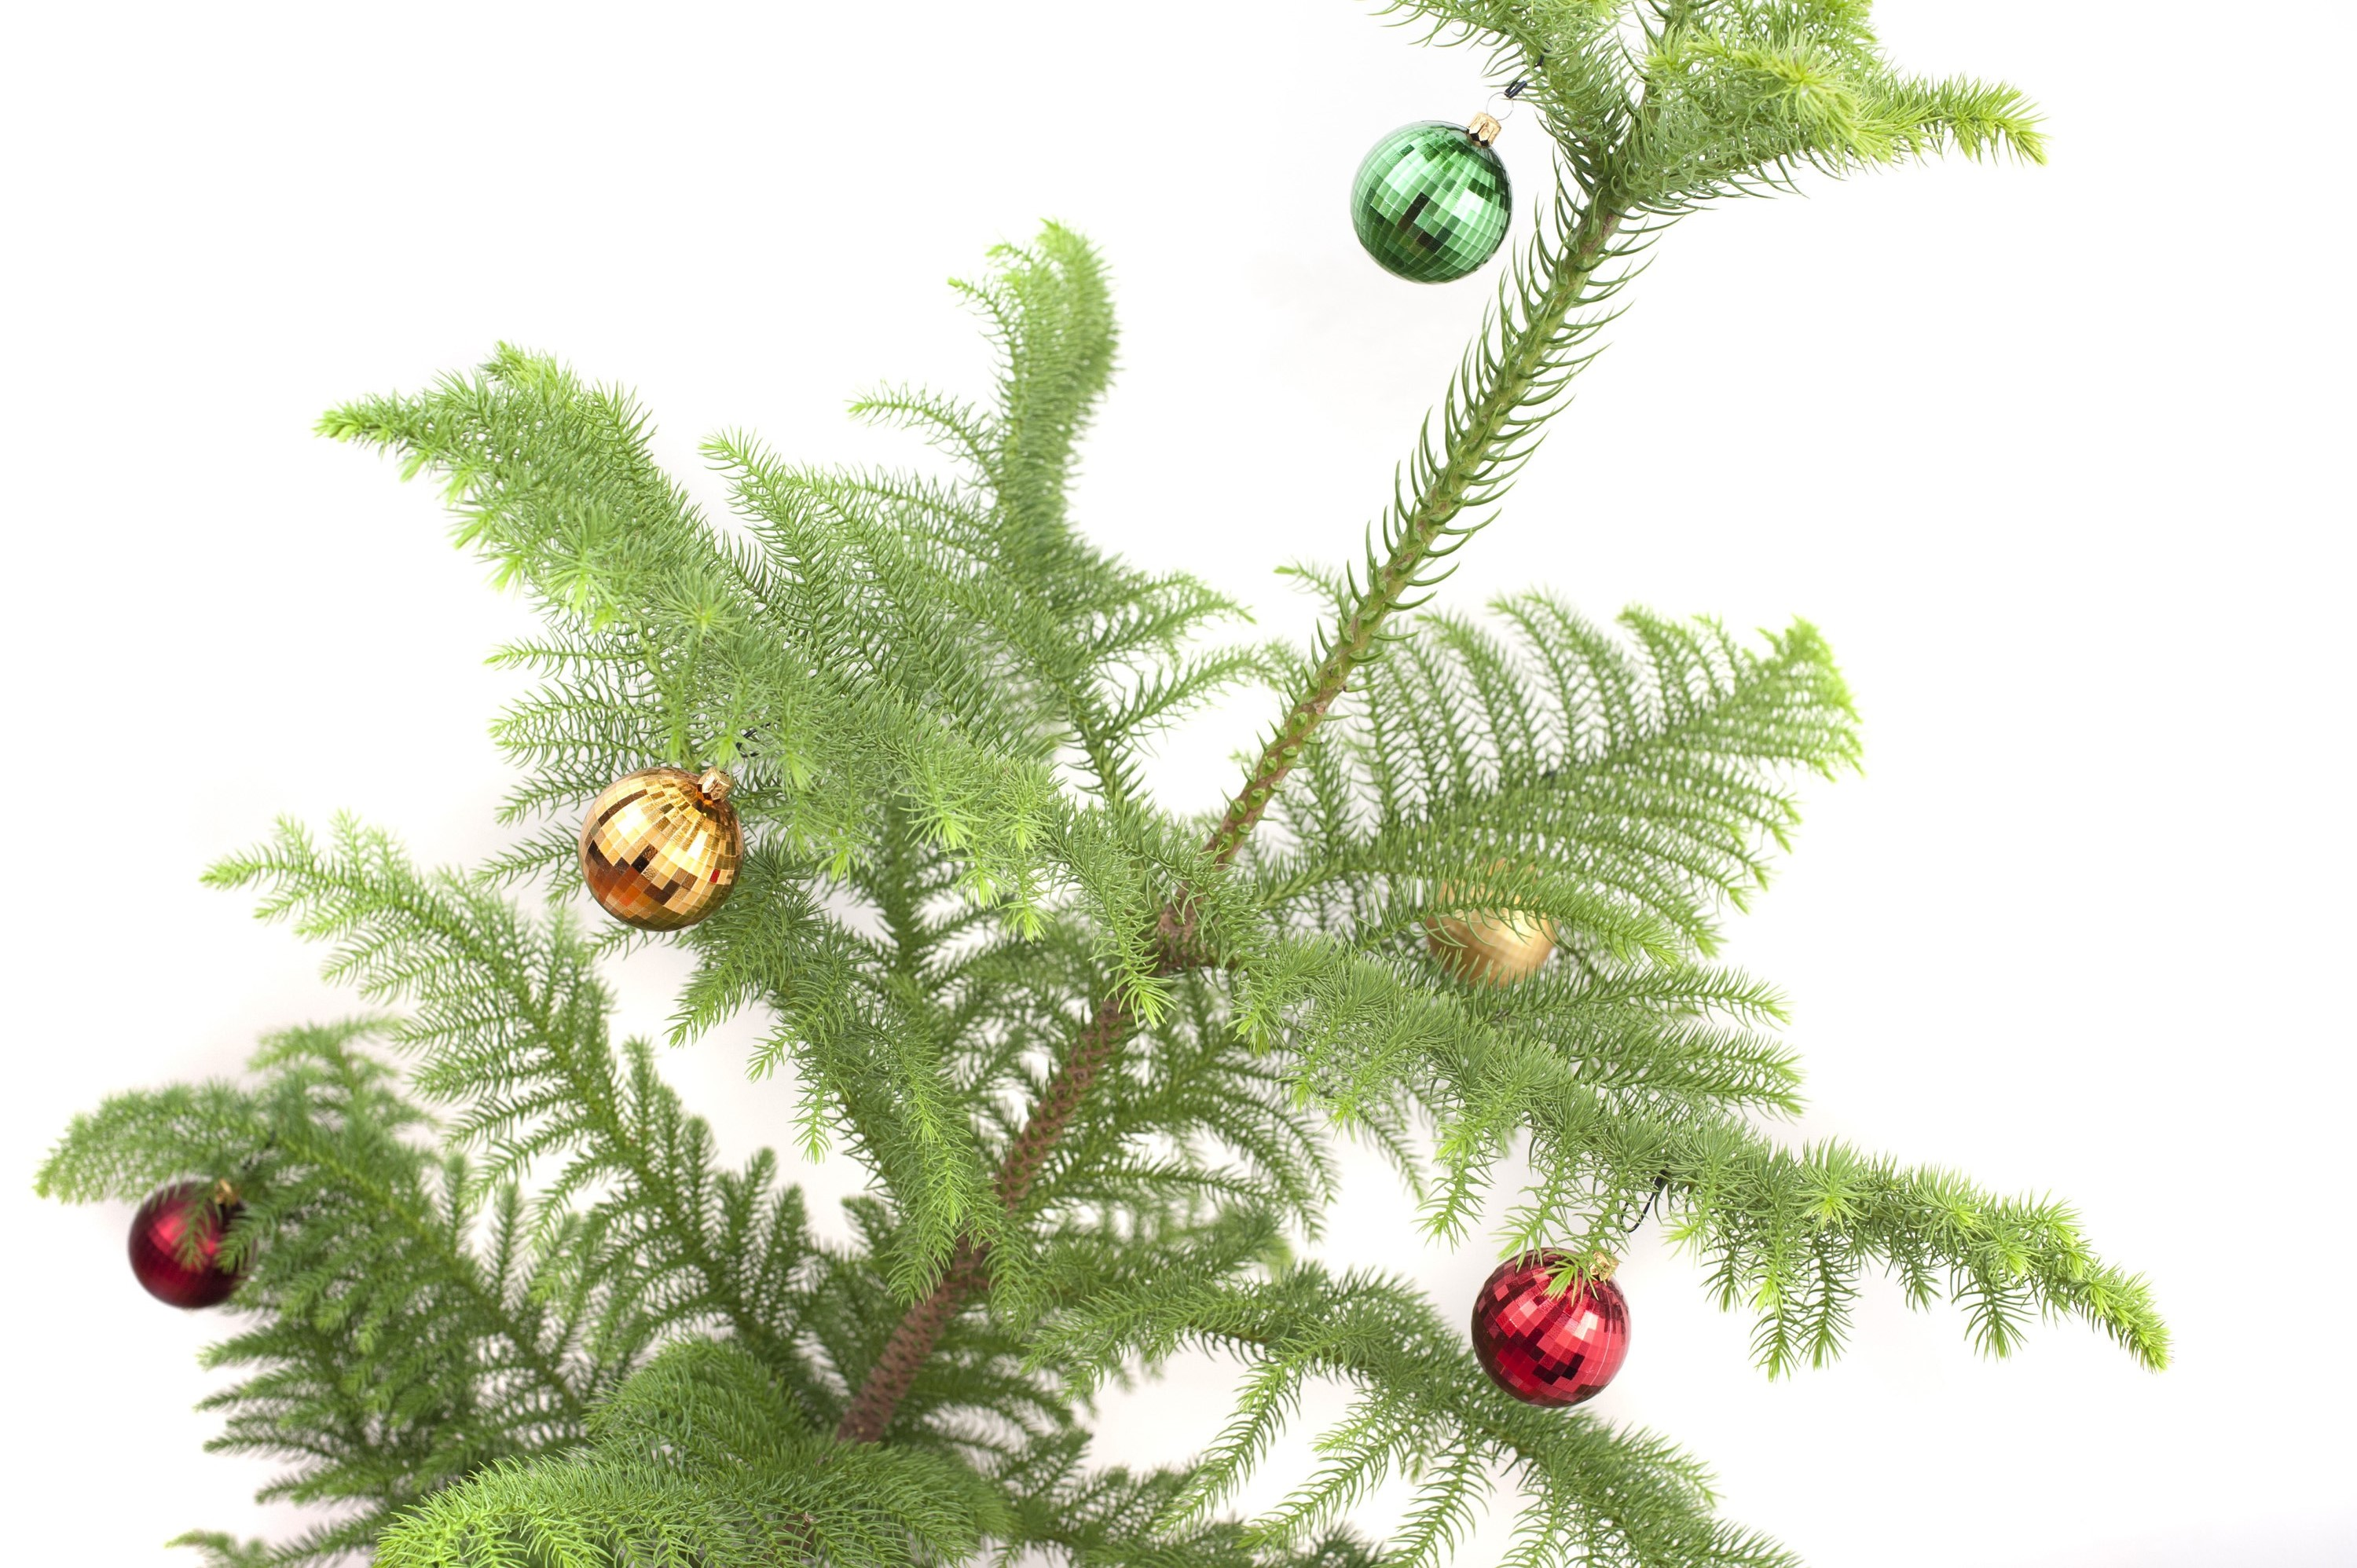 isolated decorated natural evergreen pine christmas tree with colourful baubles hanging on the branches on - Mountain King Christmas Trees